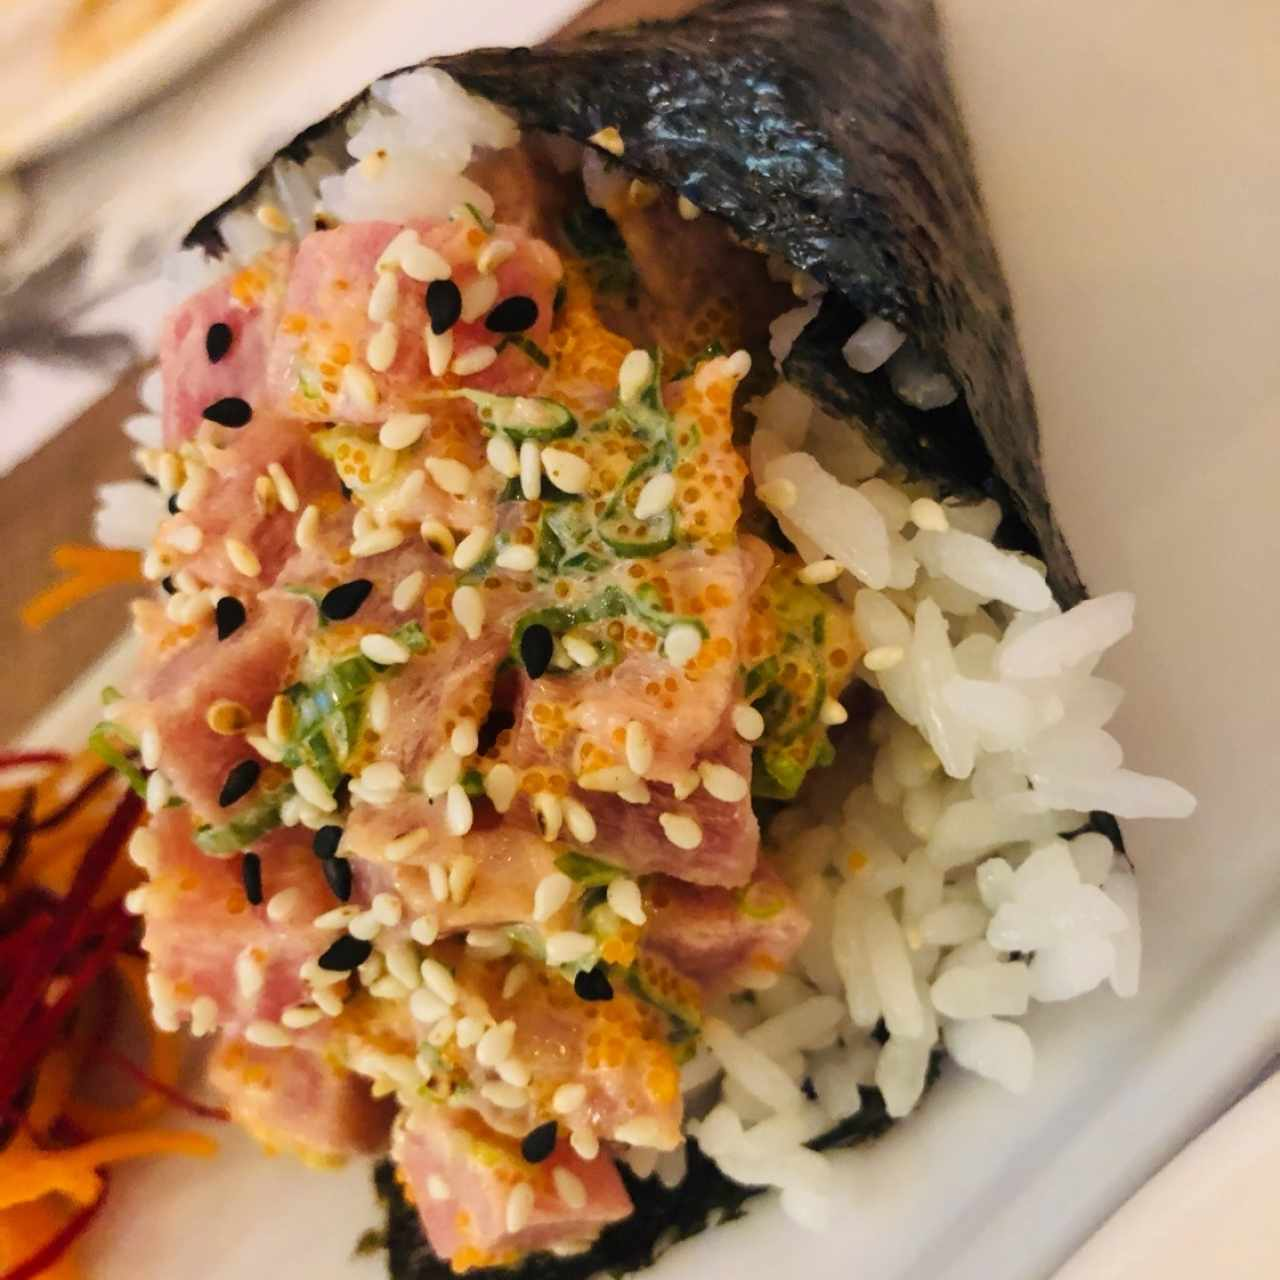 Temakis - Spicy Tuna